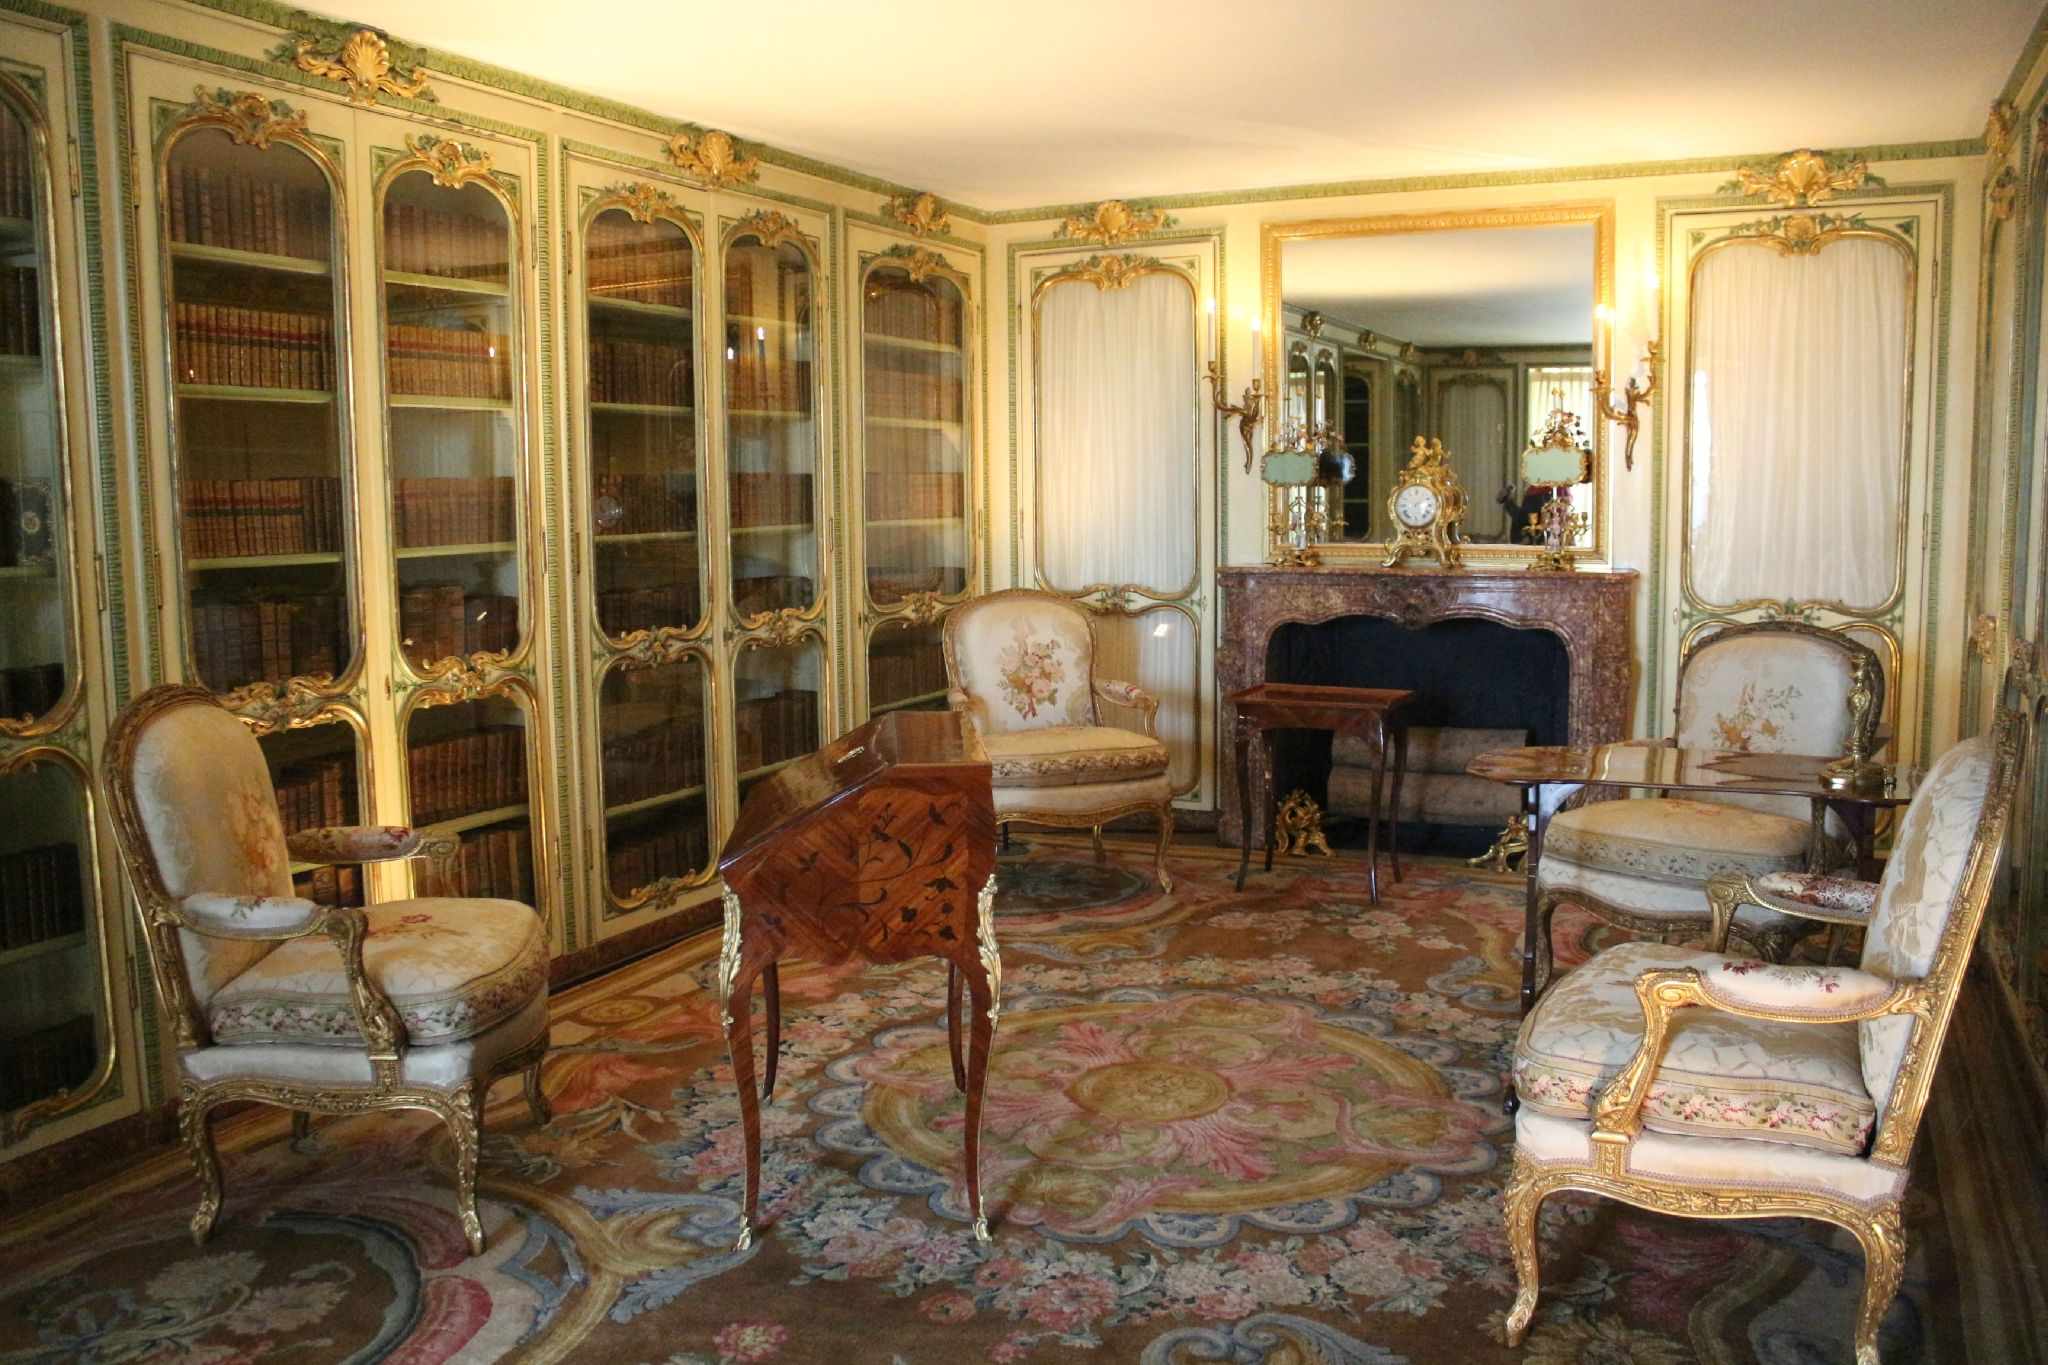 La biblioth que de madame victoire sister of louis xv at for Chateau de versailles interieur